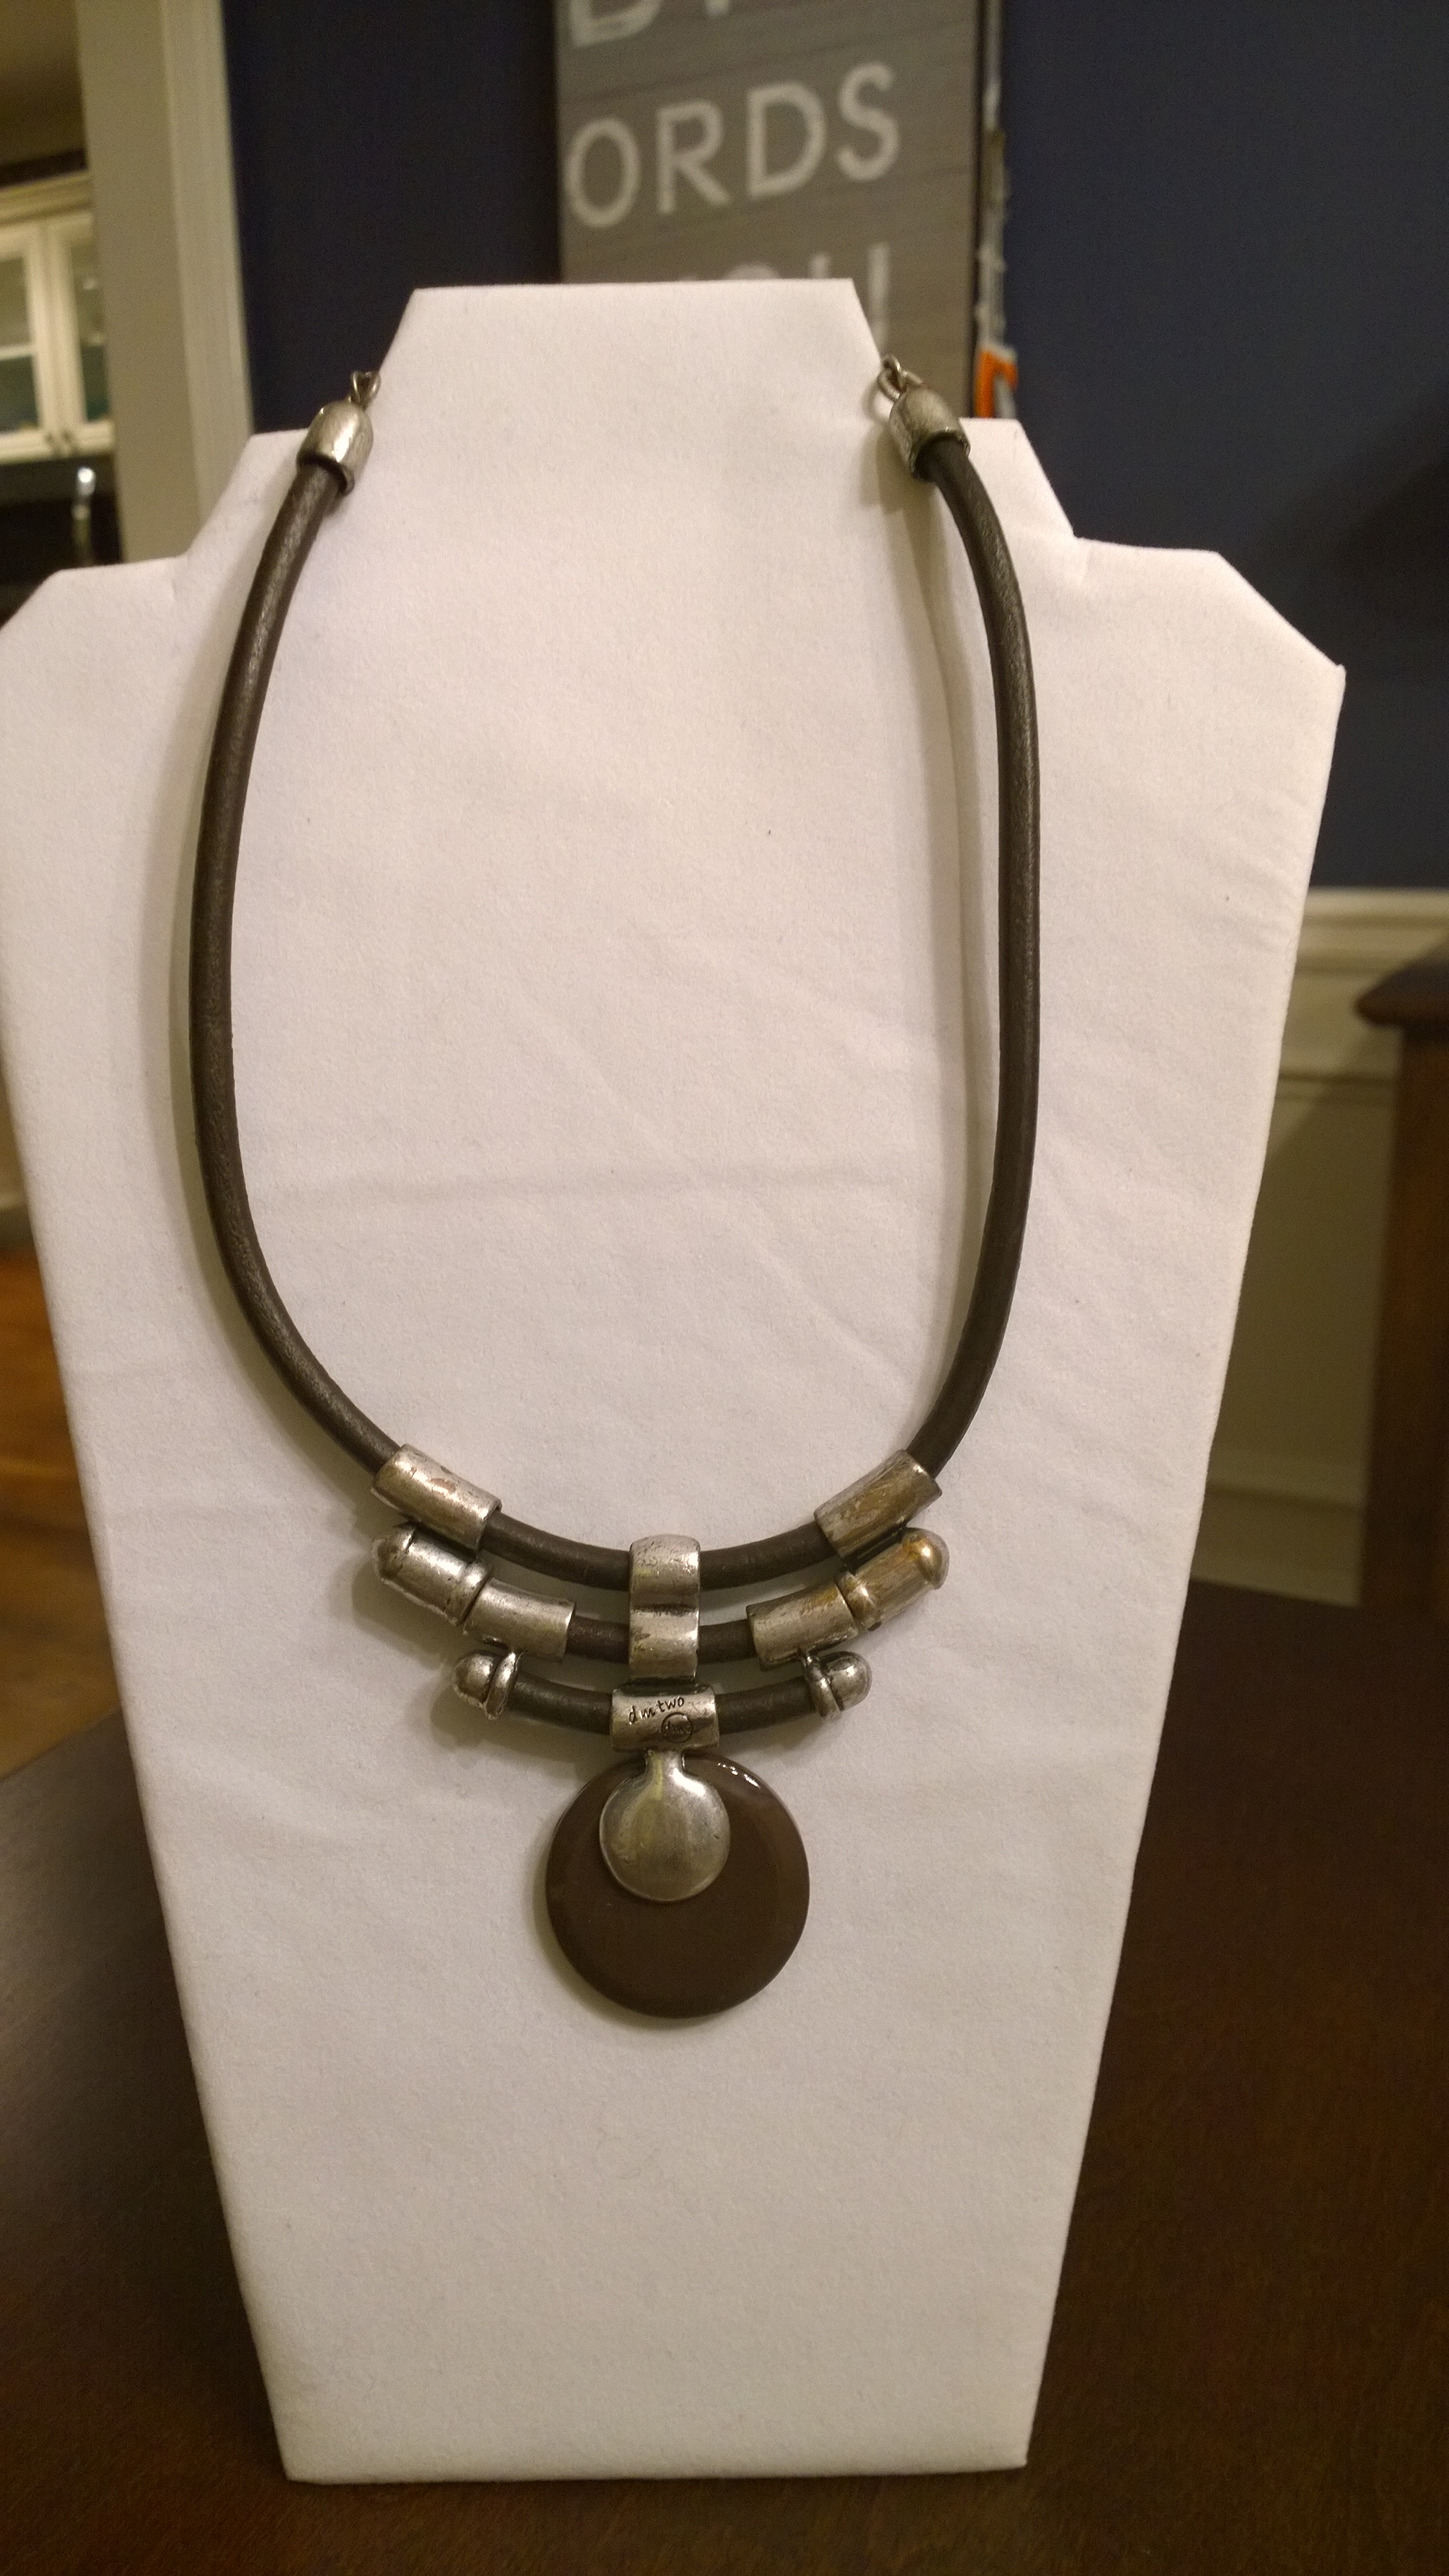 Stone and Leather Necklace 1N23